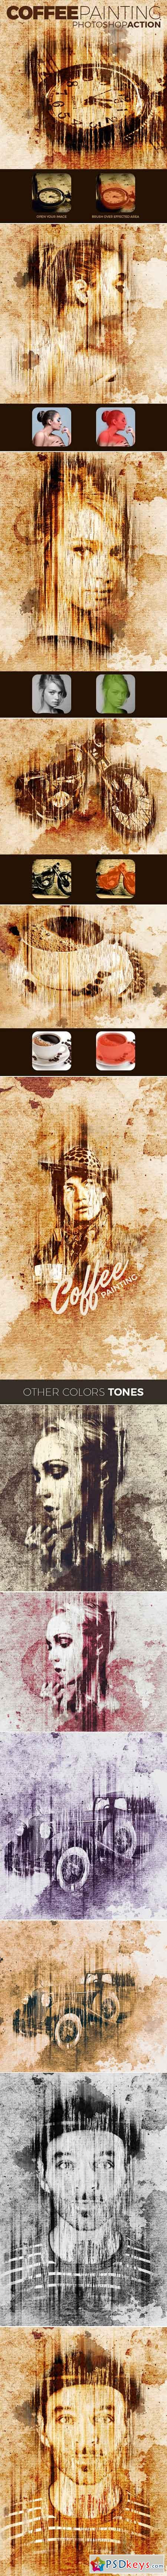 Coffee Painting Action 15171888